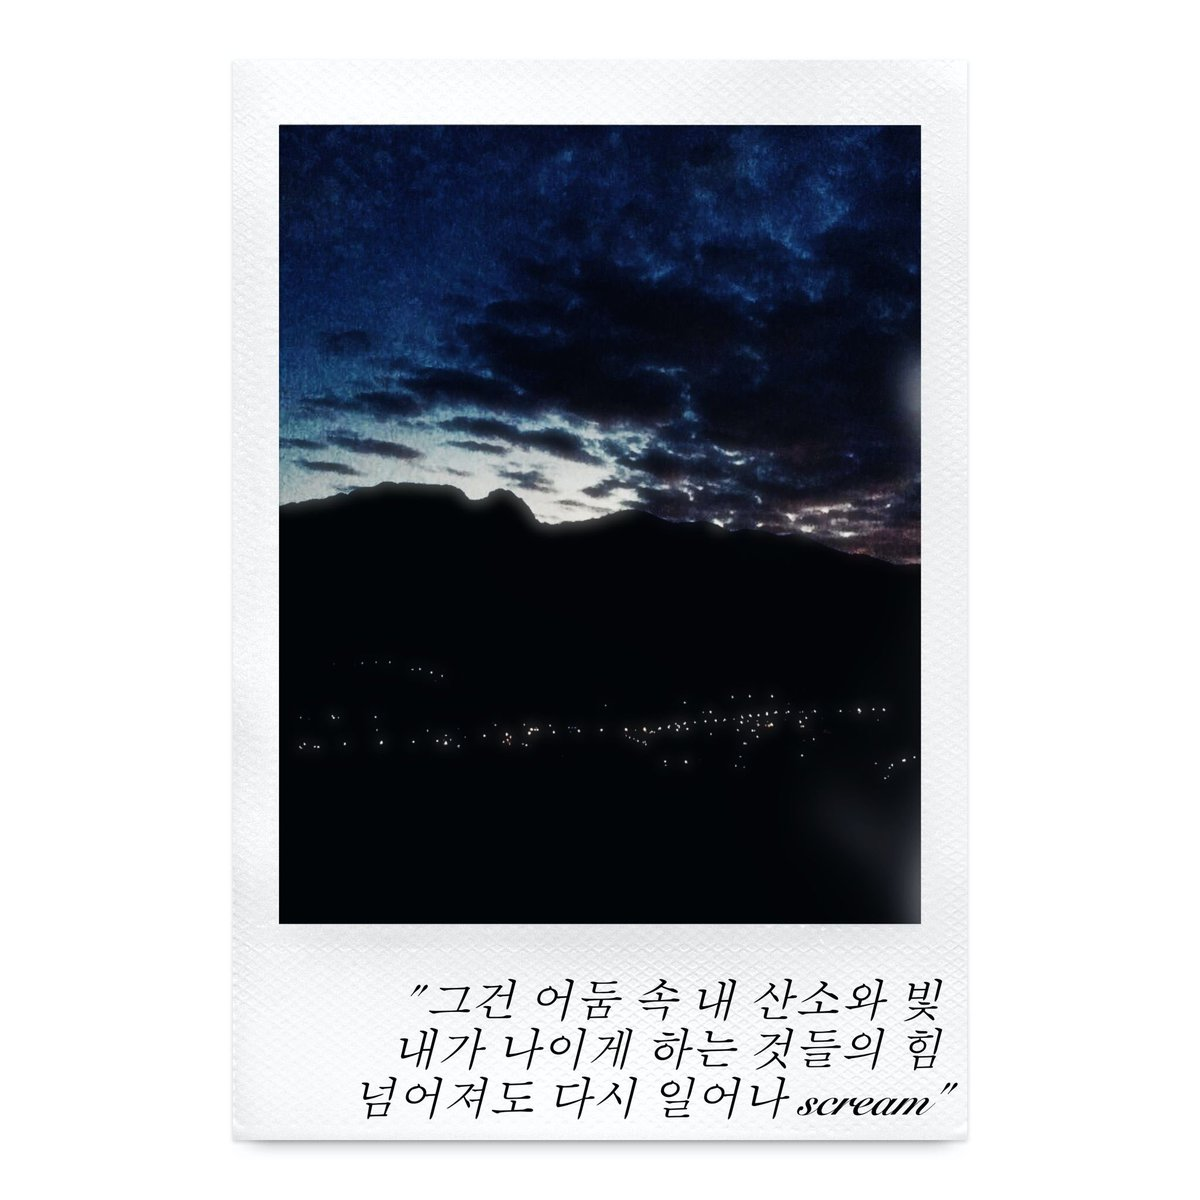 🎶🎶🎶 #on #BTS #방탄소년단 @BTS_twt ~~~ BTS lyrics plus my photo 📸 ~~~ #photography #polaroid #nature